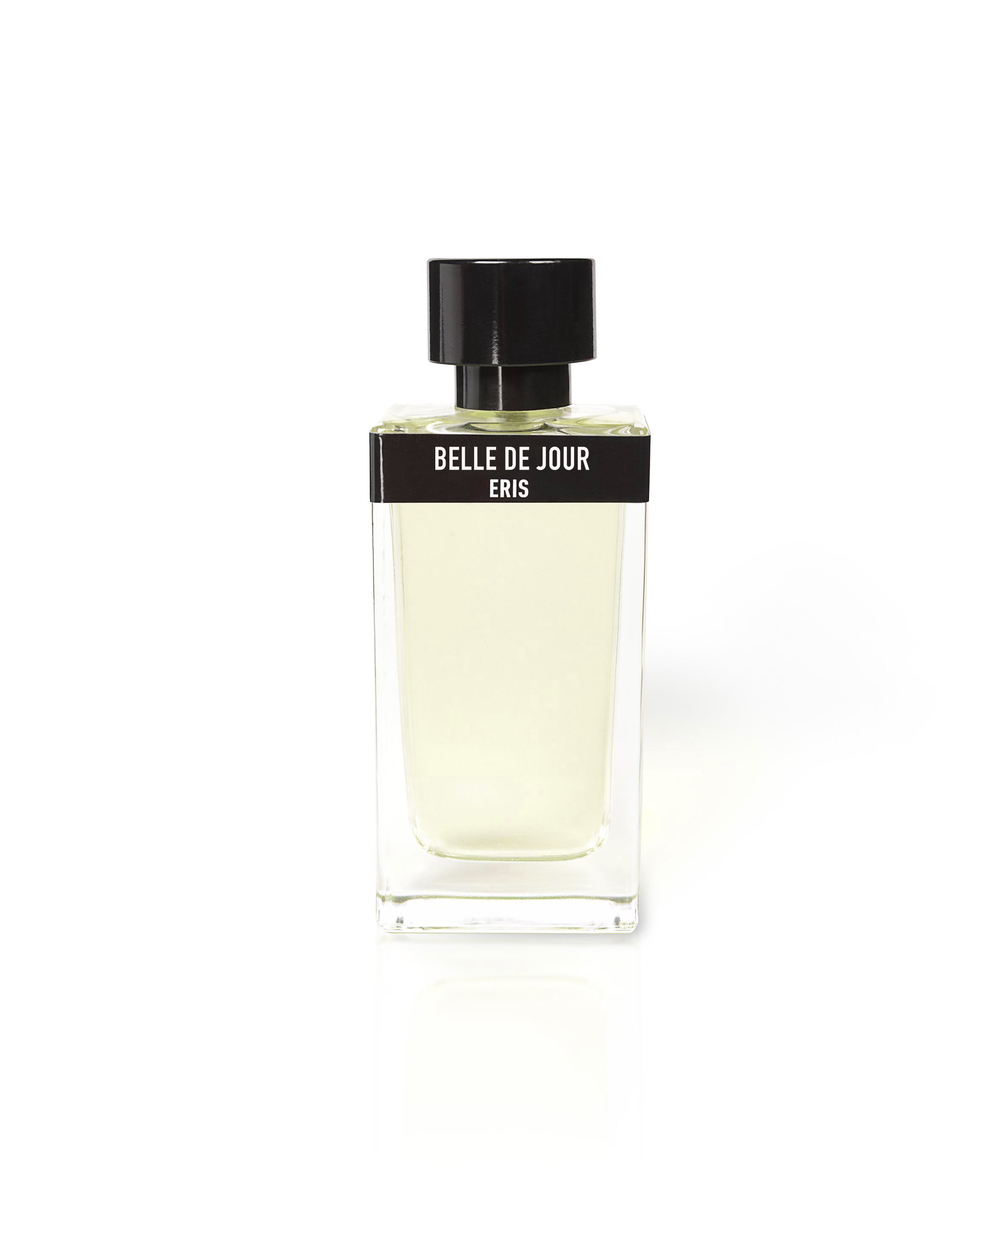 ERIS PARFUMS BELLE DE JOUR PERFUME BOTTLE.jpg